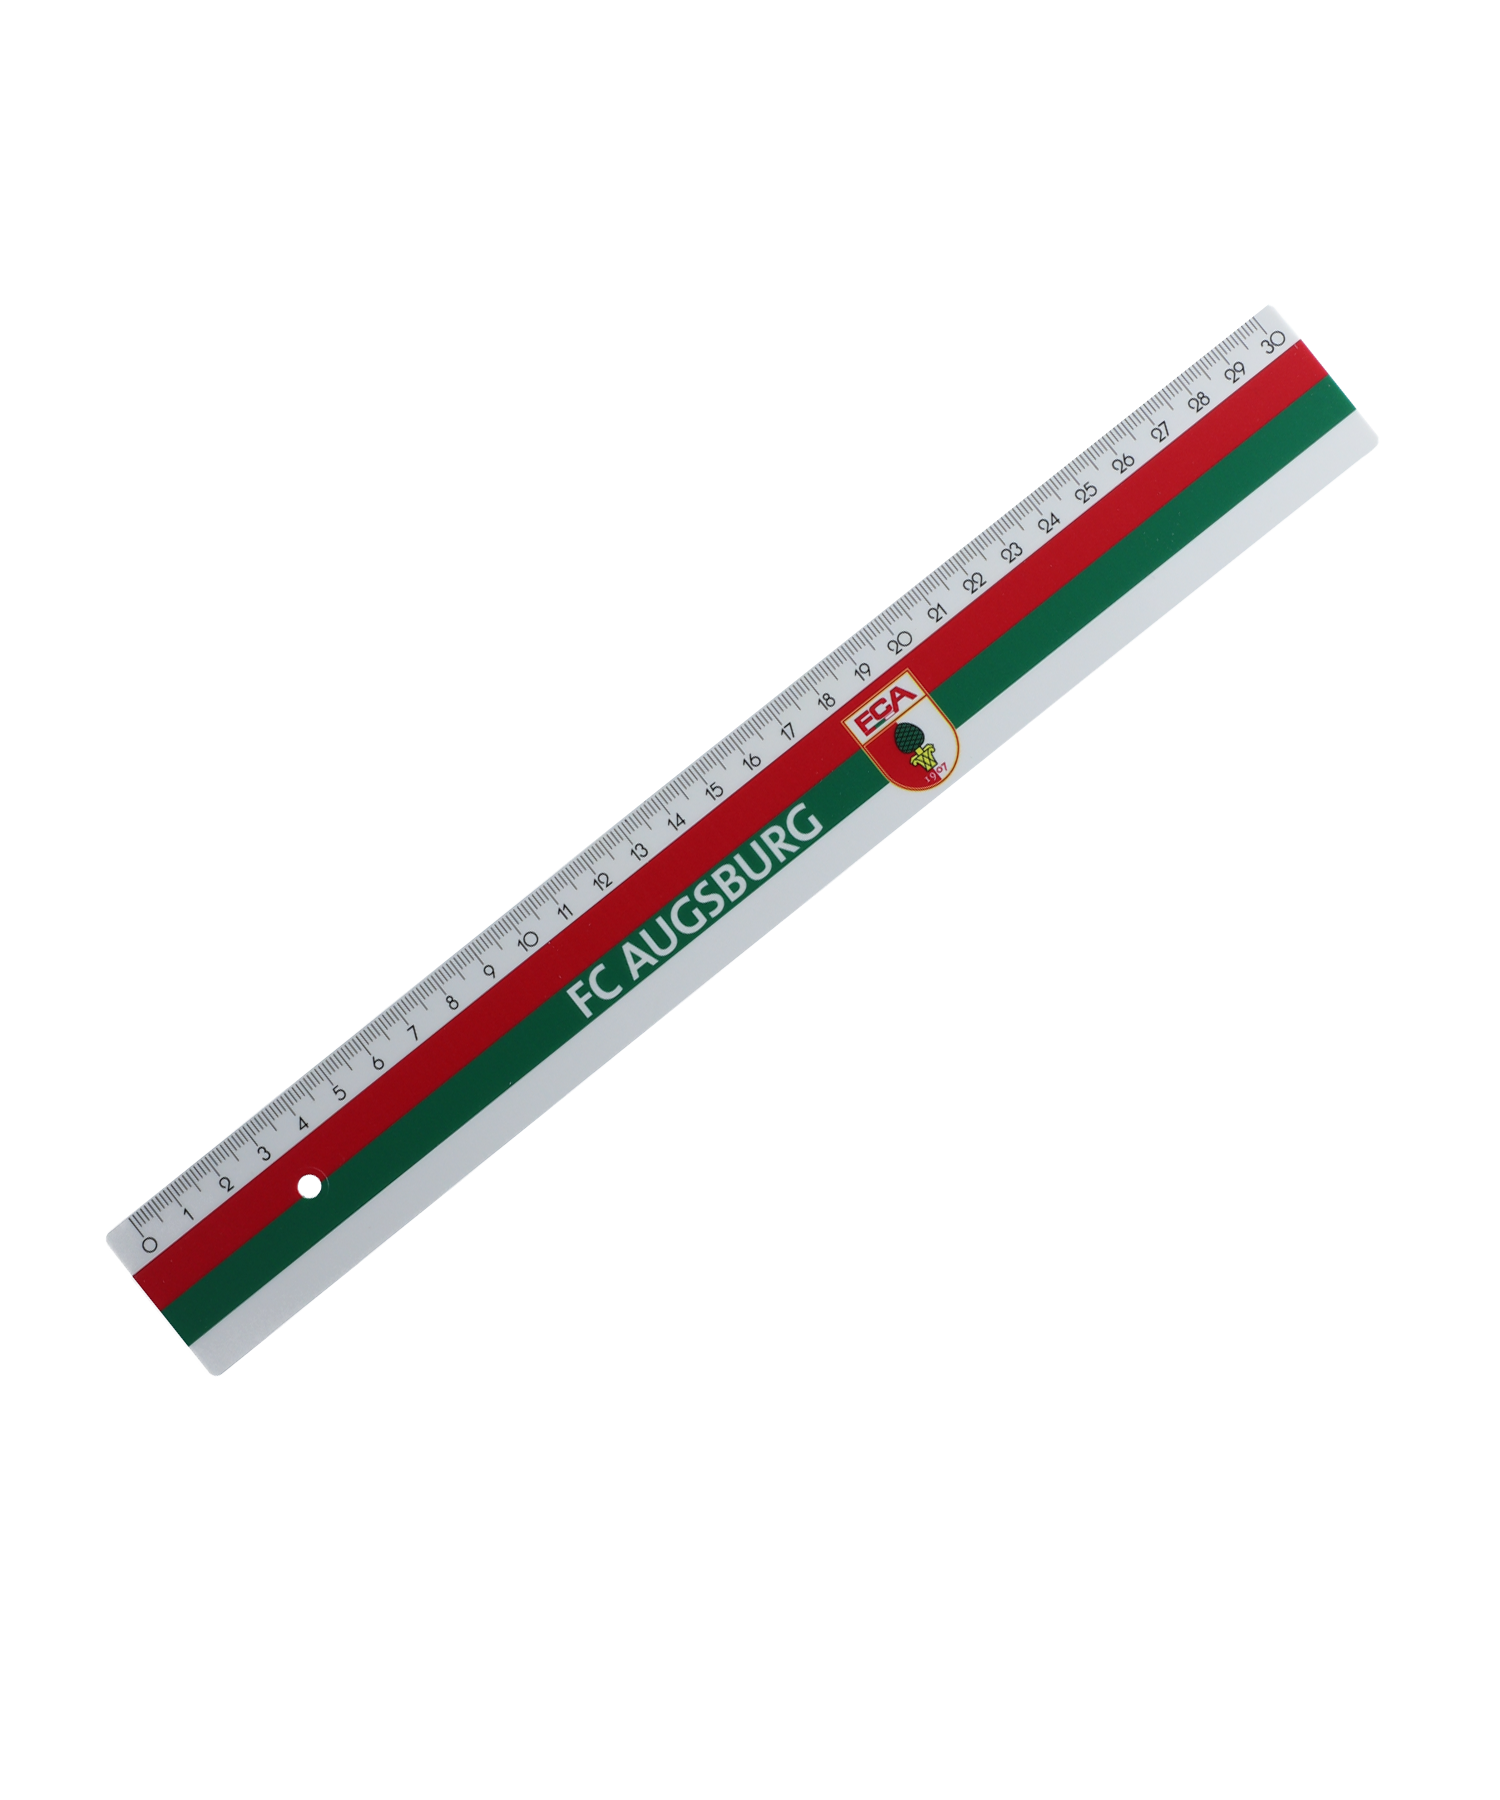 FC Augsburg Lineal 30cm Rot - rot